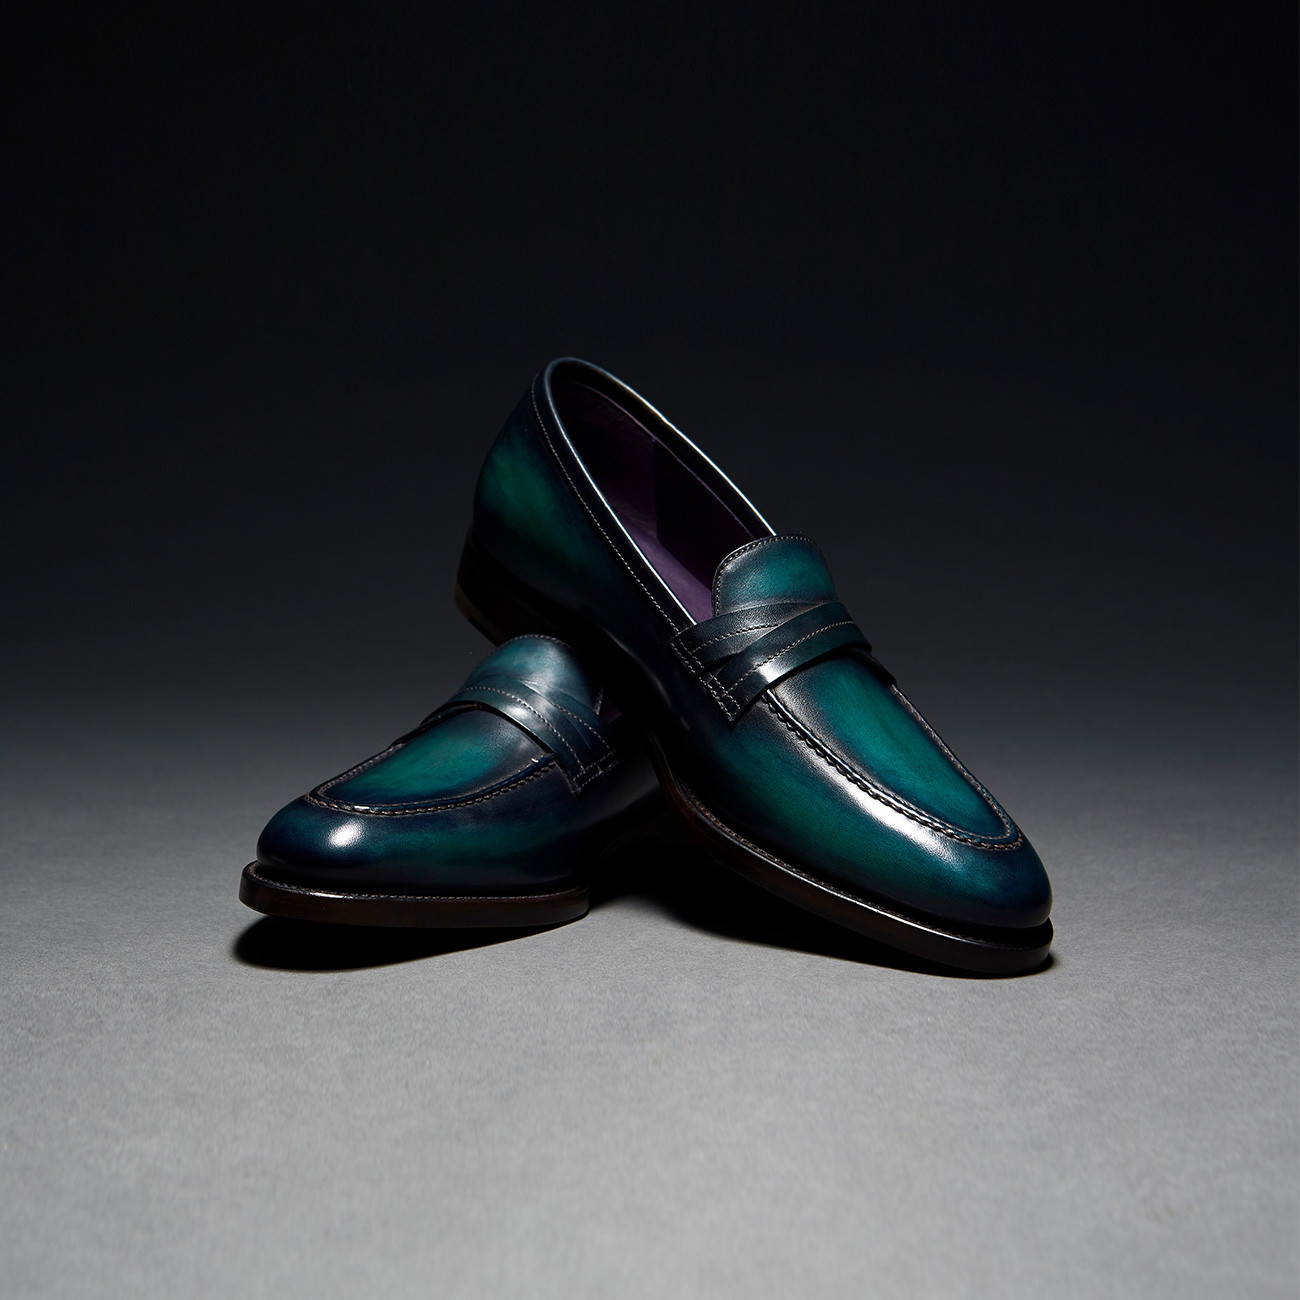 [Custommania X The shuri] PATINA LOAFER LAF No.549